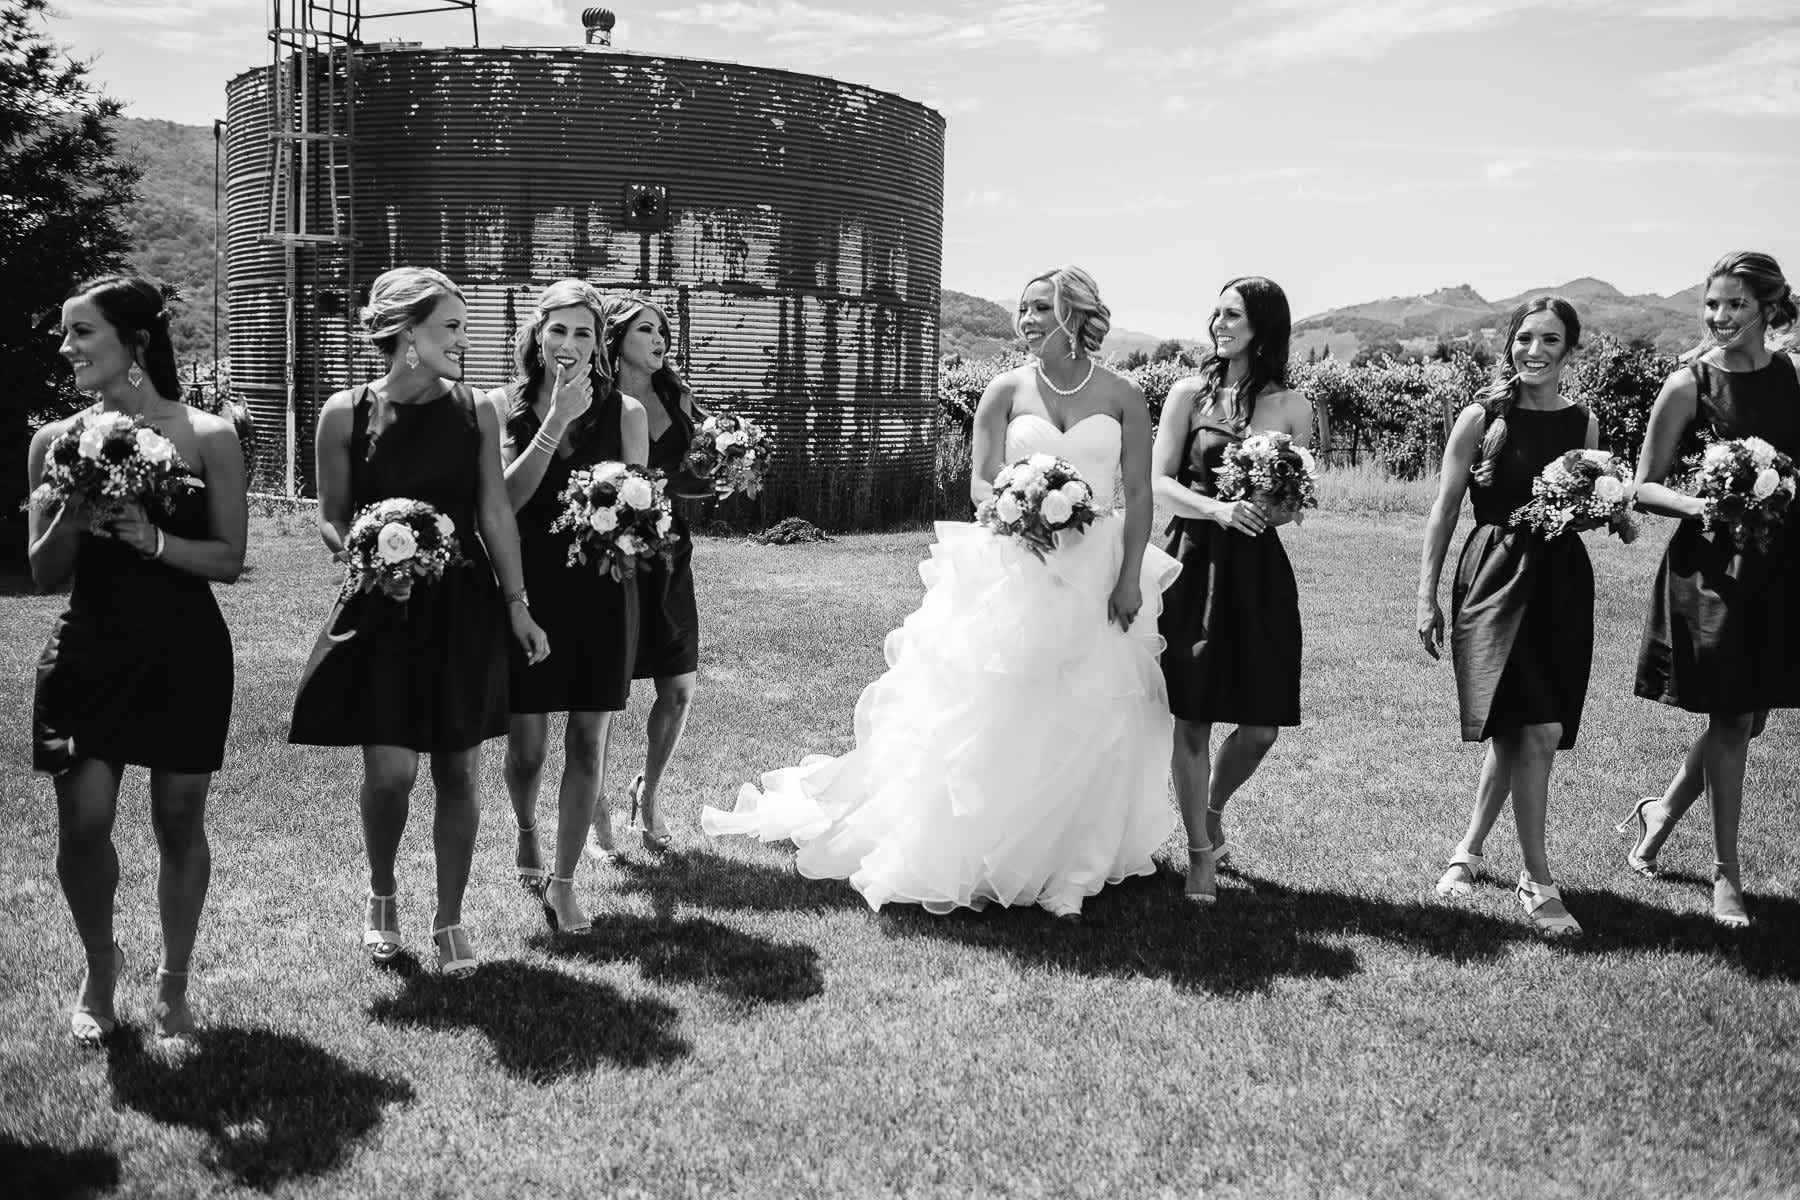 kirigin-cellars-gilroy-summer-sunset-wedding-17